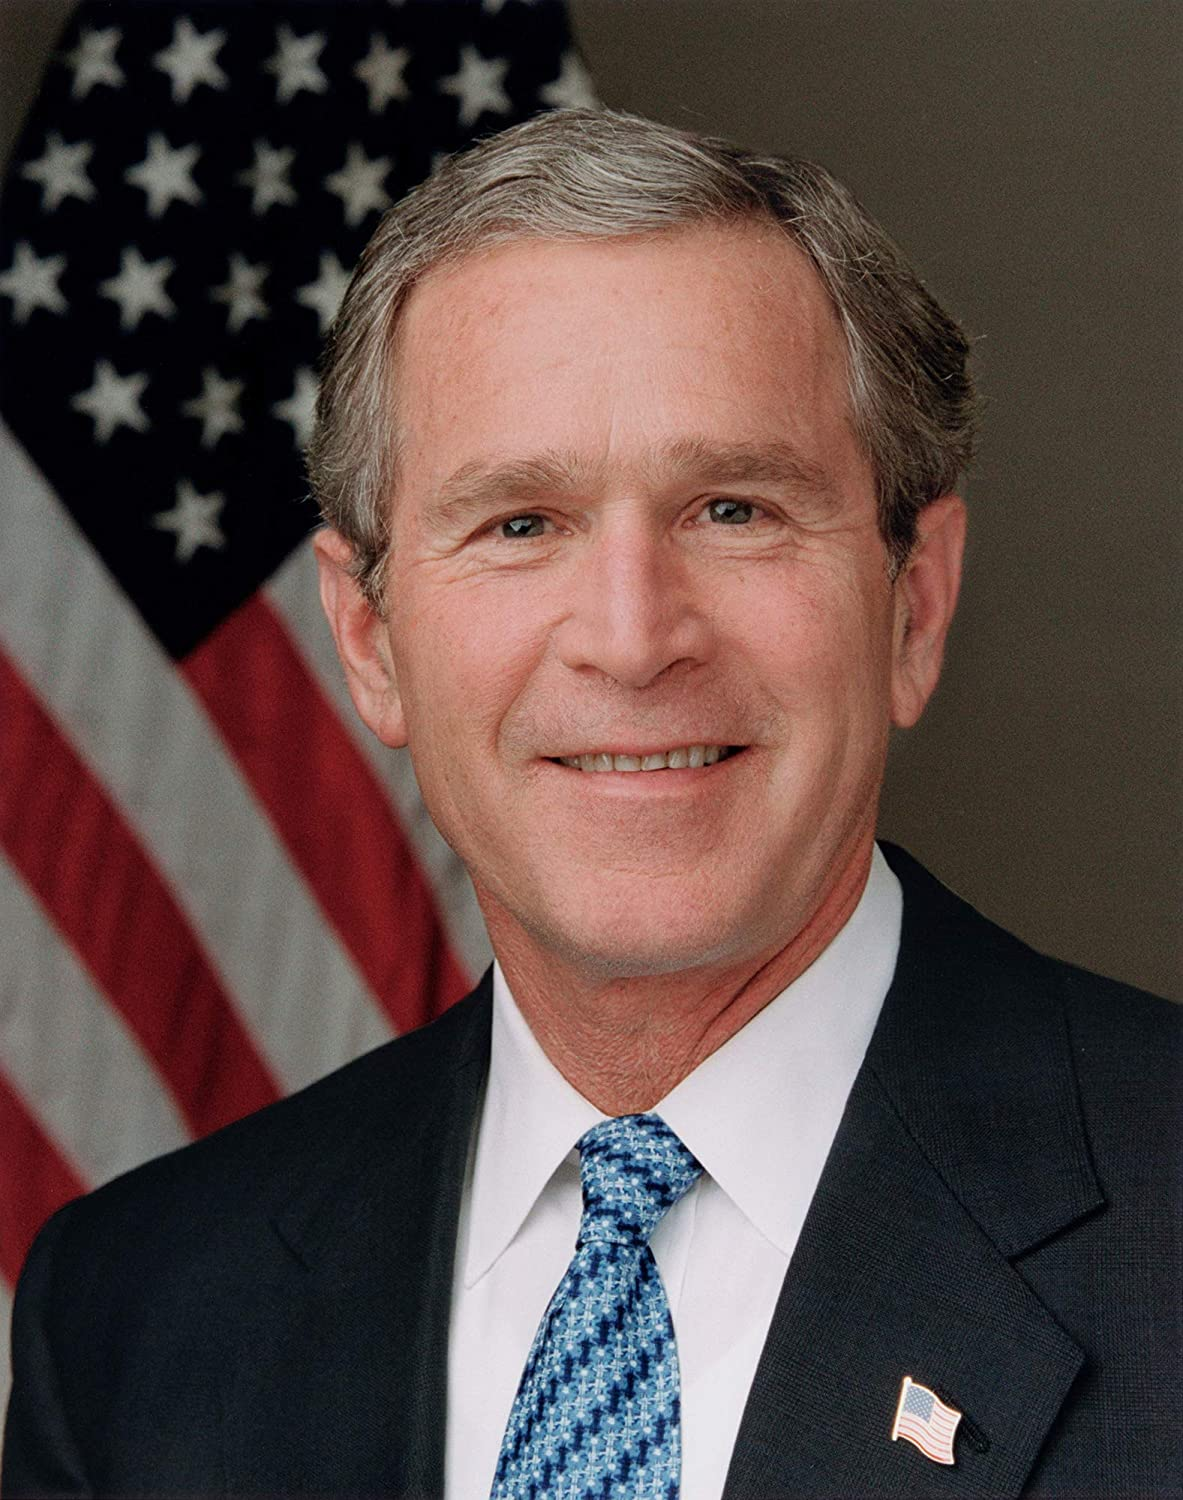 George W. Bush Sale Special Price Selling rankings Photograph - Historical 2003 US Pr Artwork from